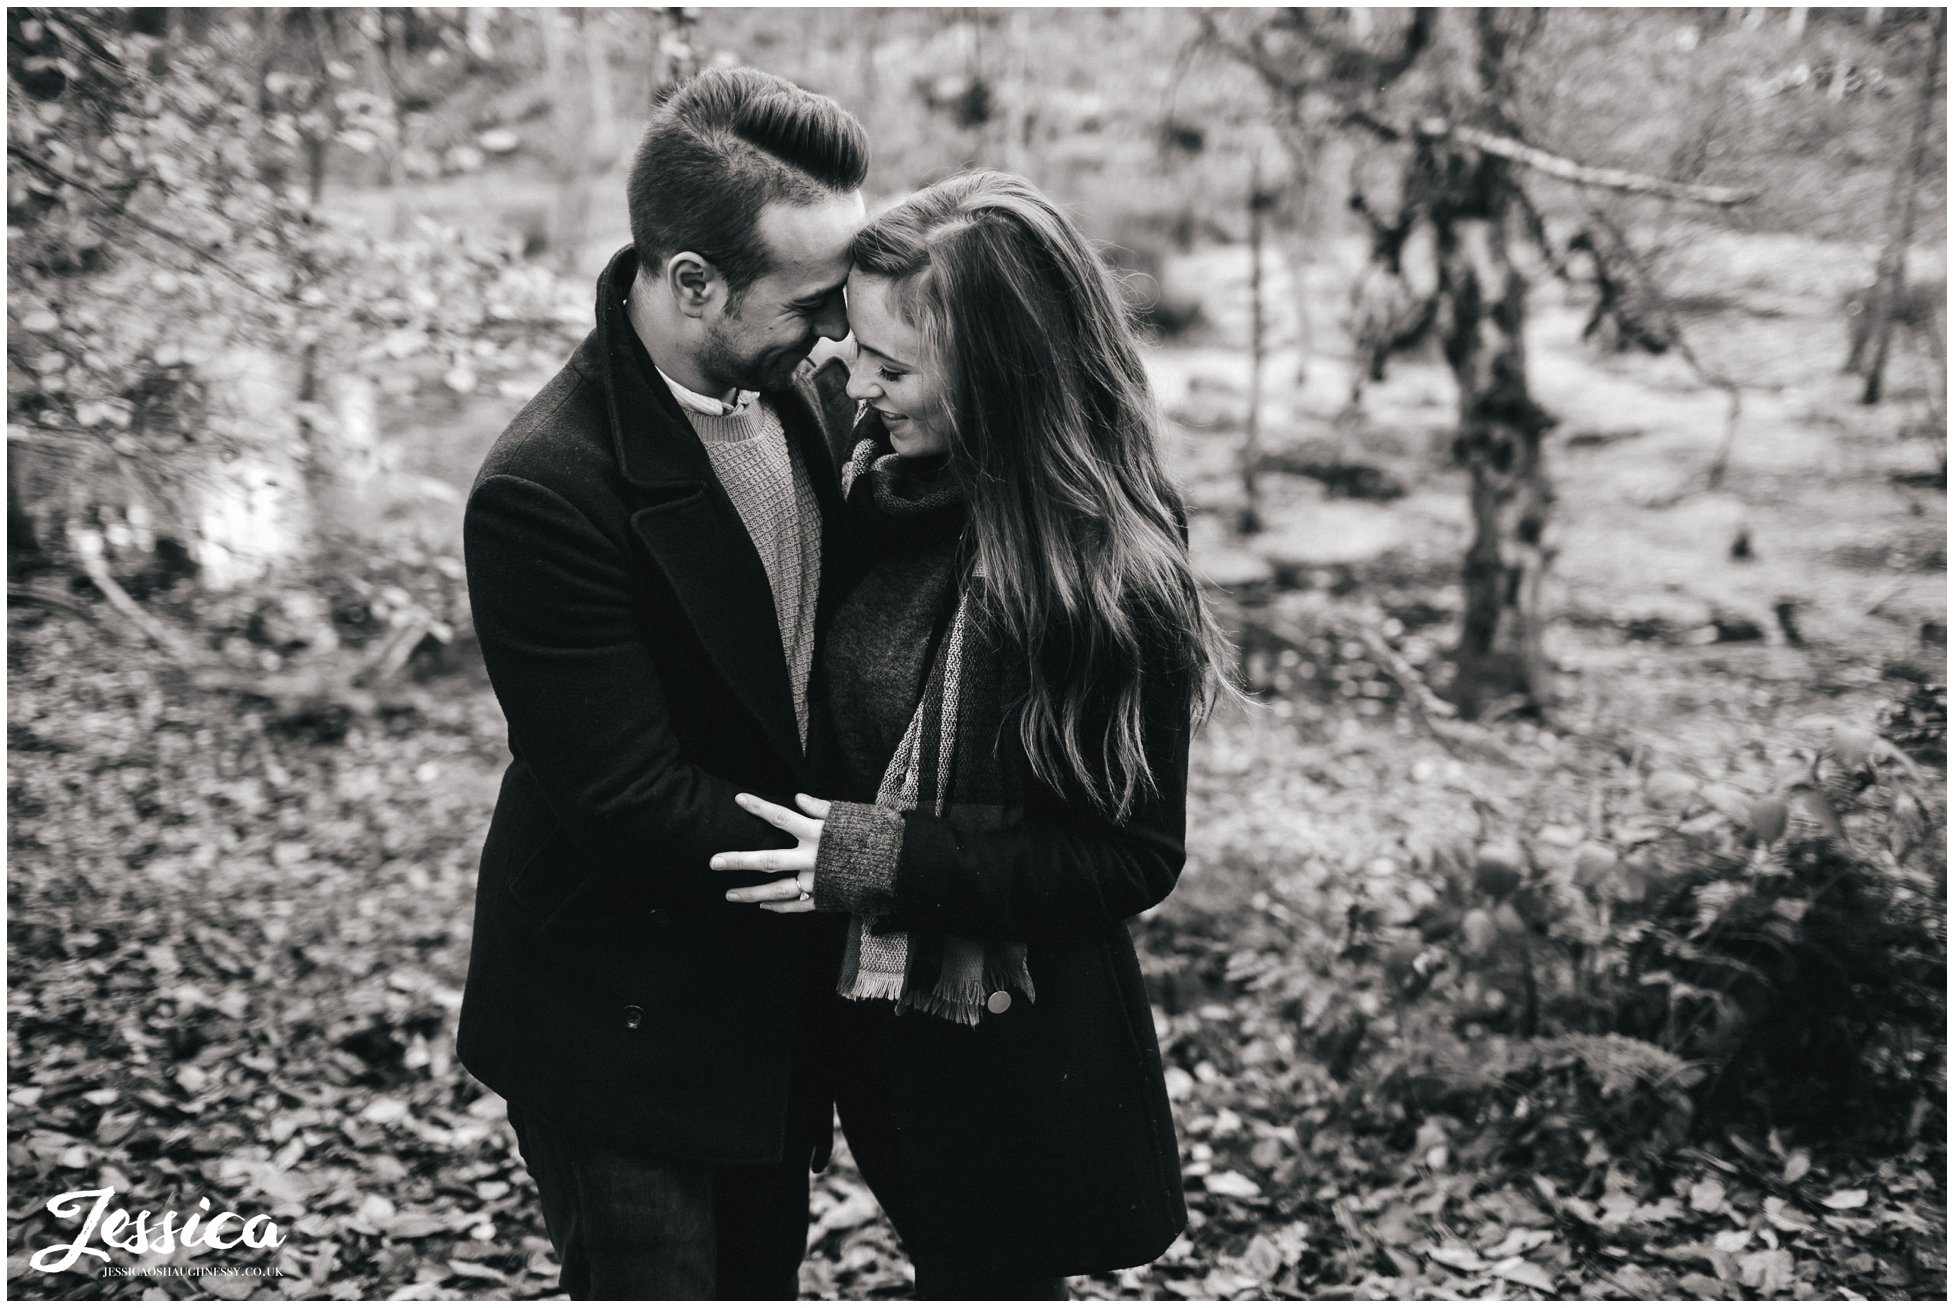 black and white shot of engaged couple embracing - delamere forest in cheshire